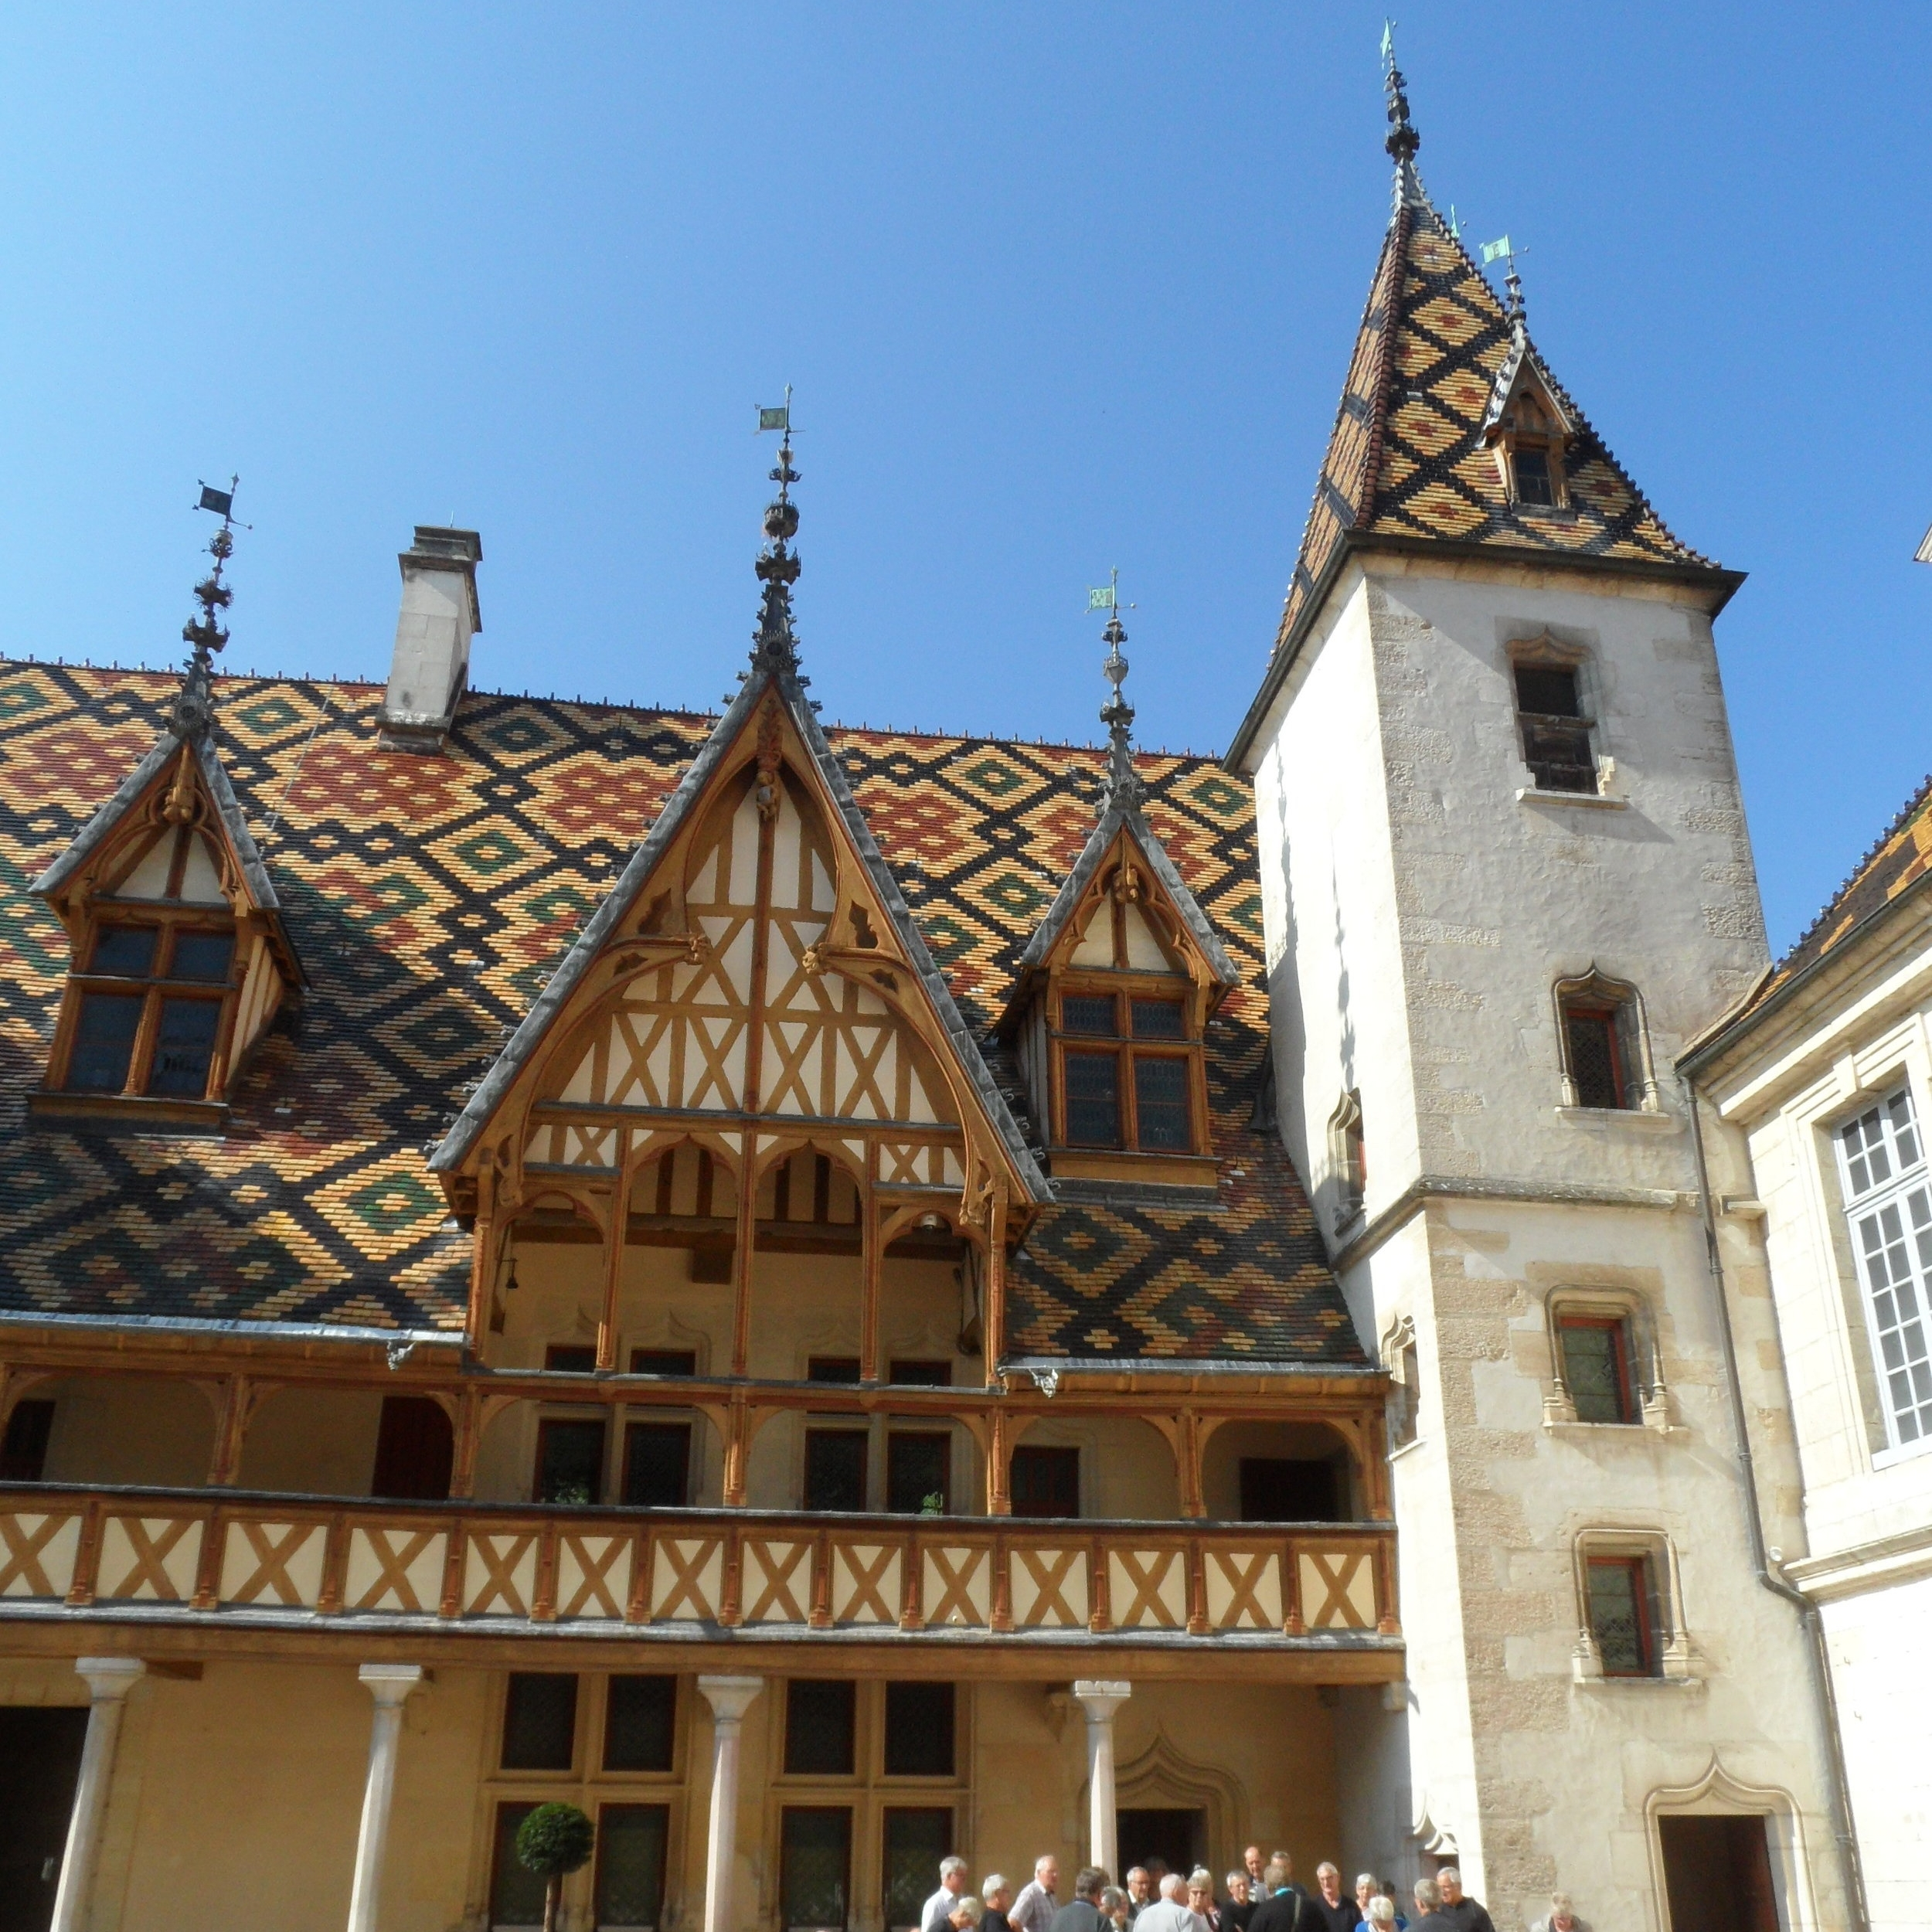 My wife and I stumbled on this beauty in Burgundy during our trip to France last fall. This roof is made of glazed tiles and found on top of Hotel Dieu in Beaune, FR.